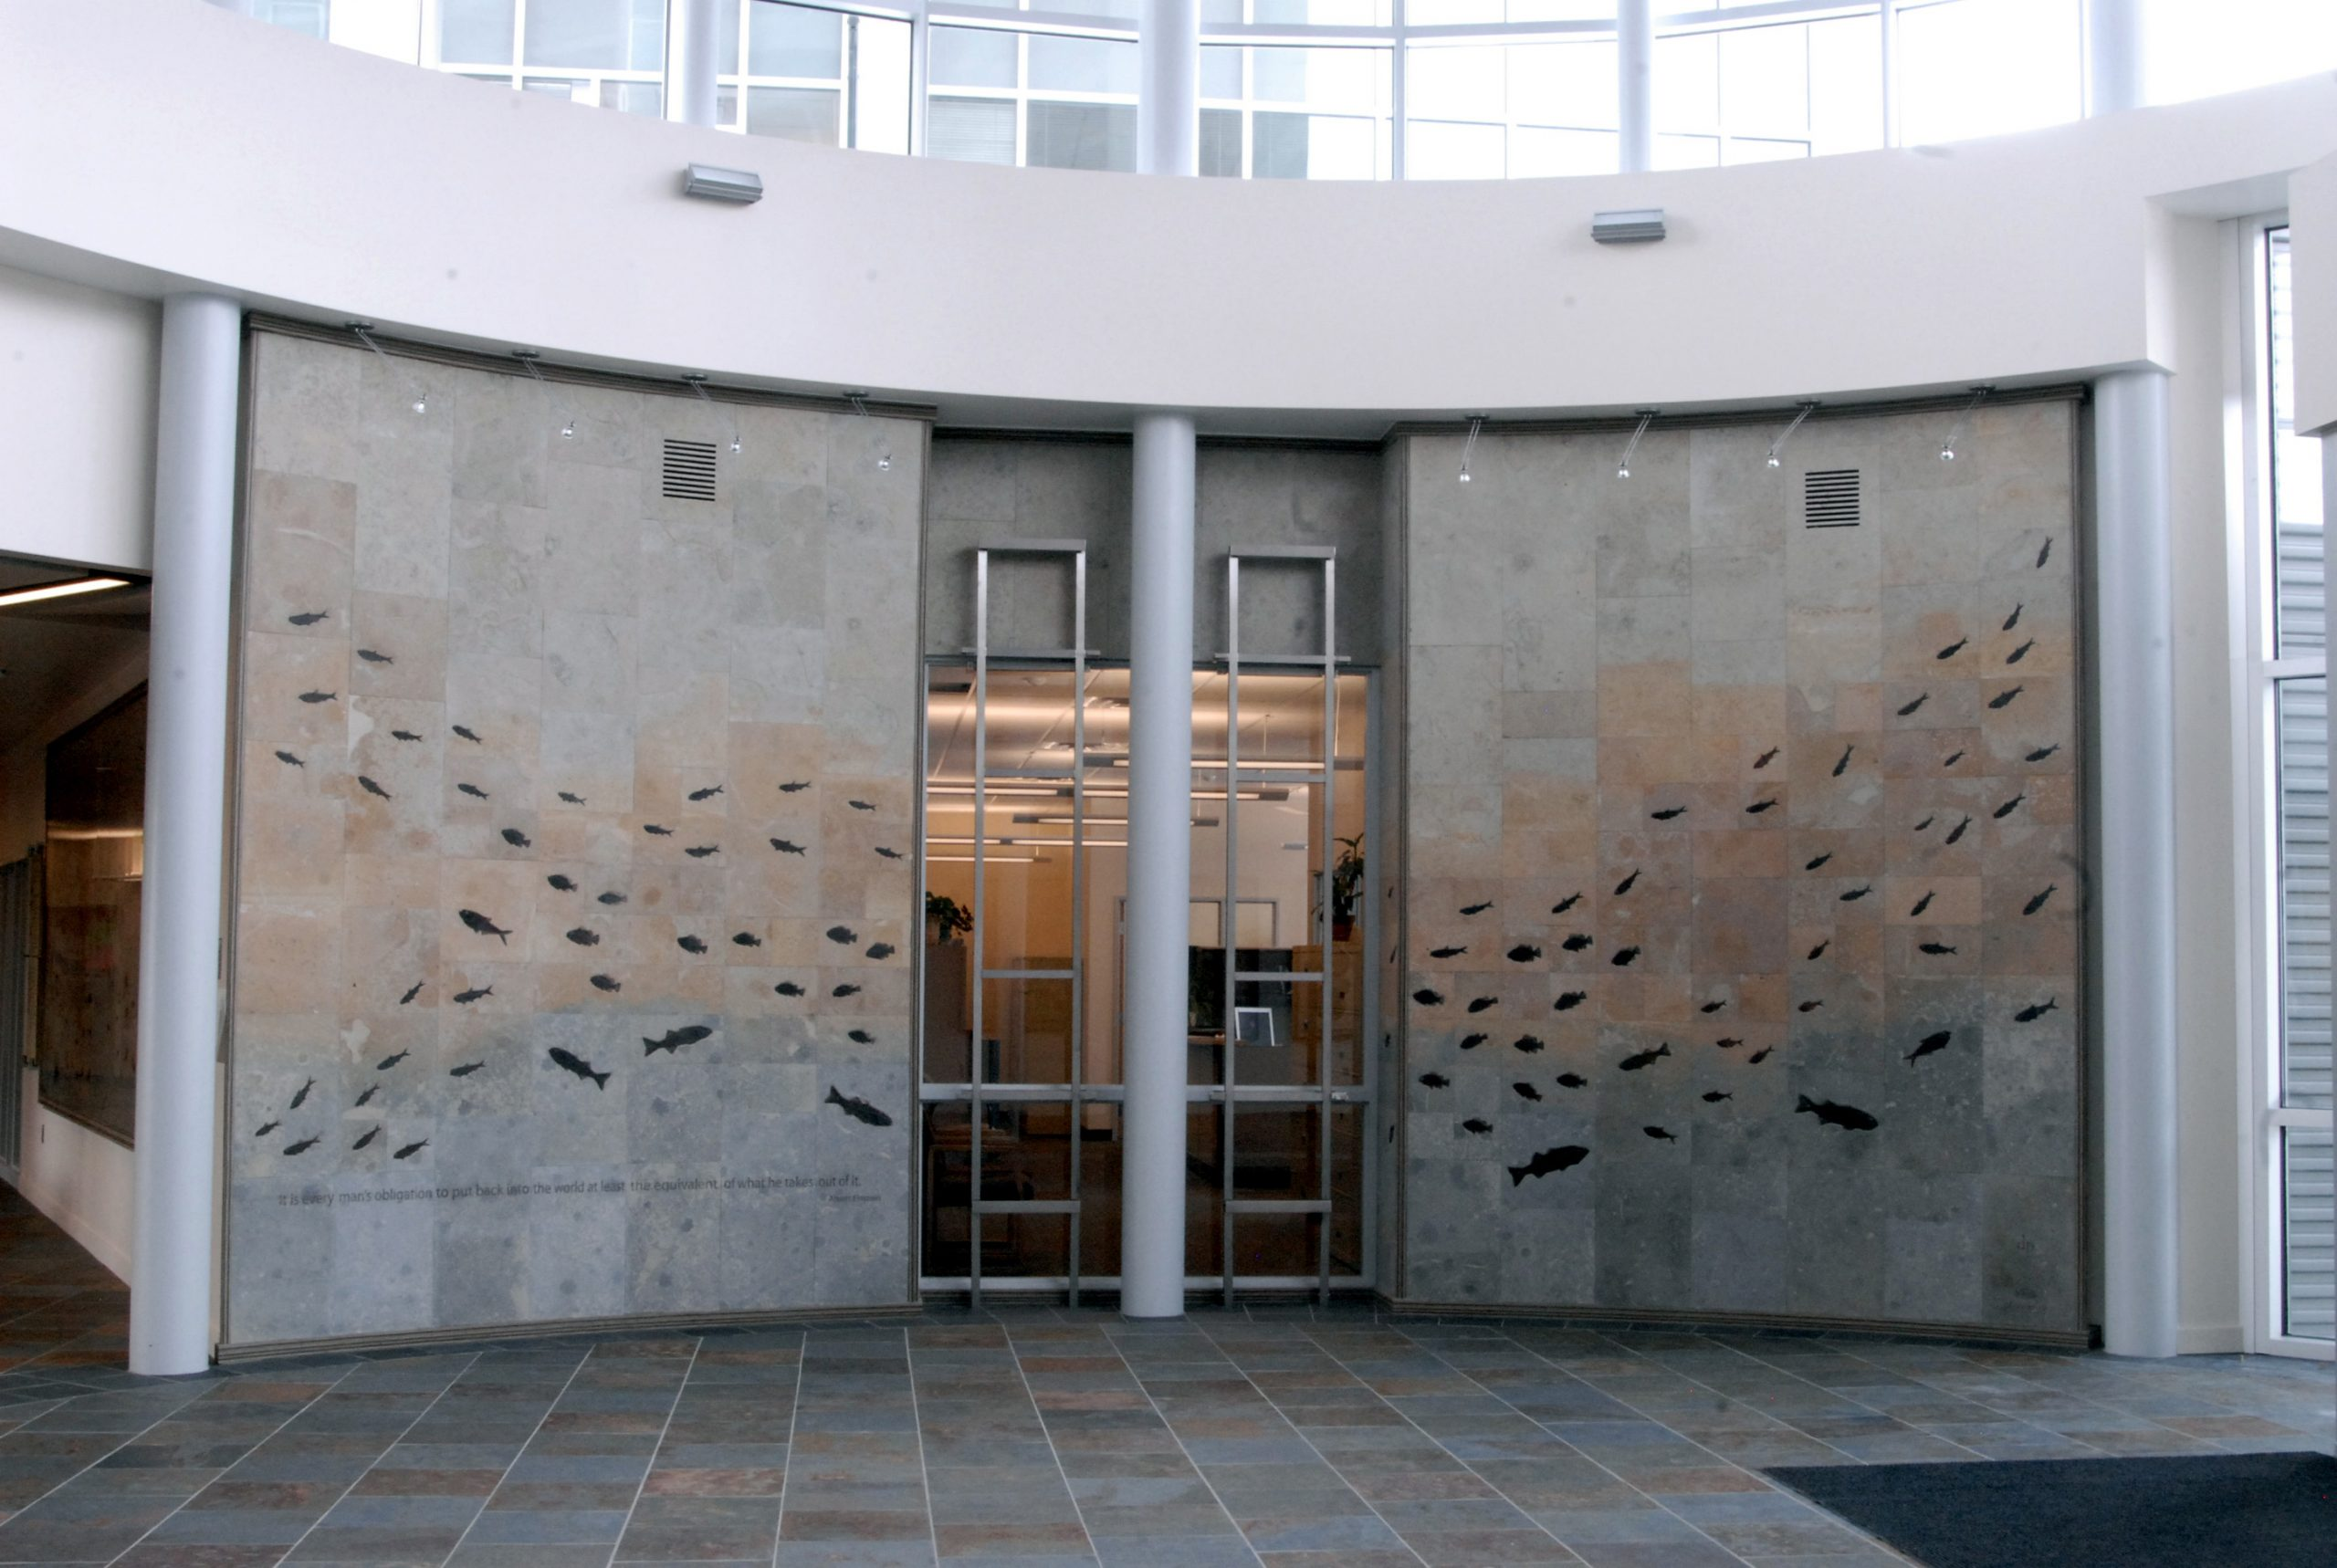 """Dozens of fossilized fish from the Green River Formation seem to swim in the """"fish wall"""" in the lobby of the University of Utah's new $25 million geology building, the Frederick Albert Sutton Building."""